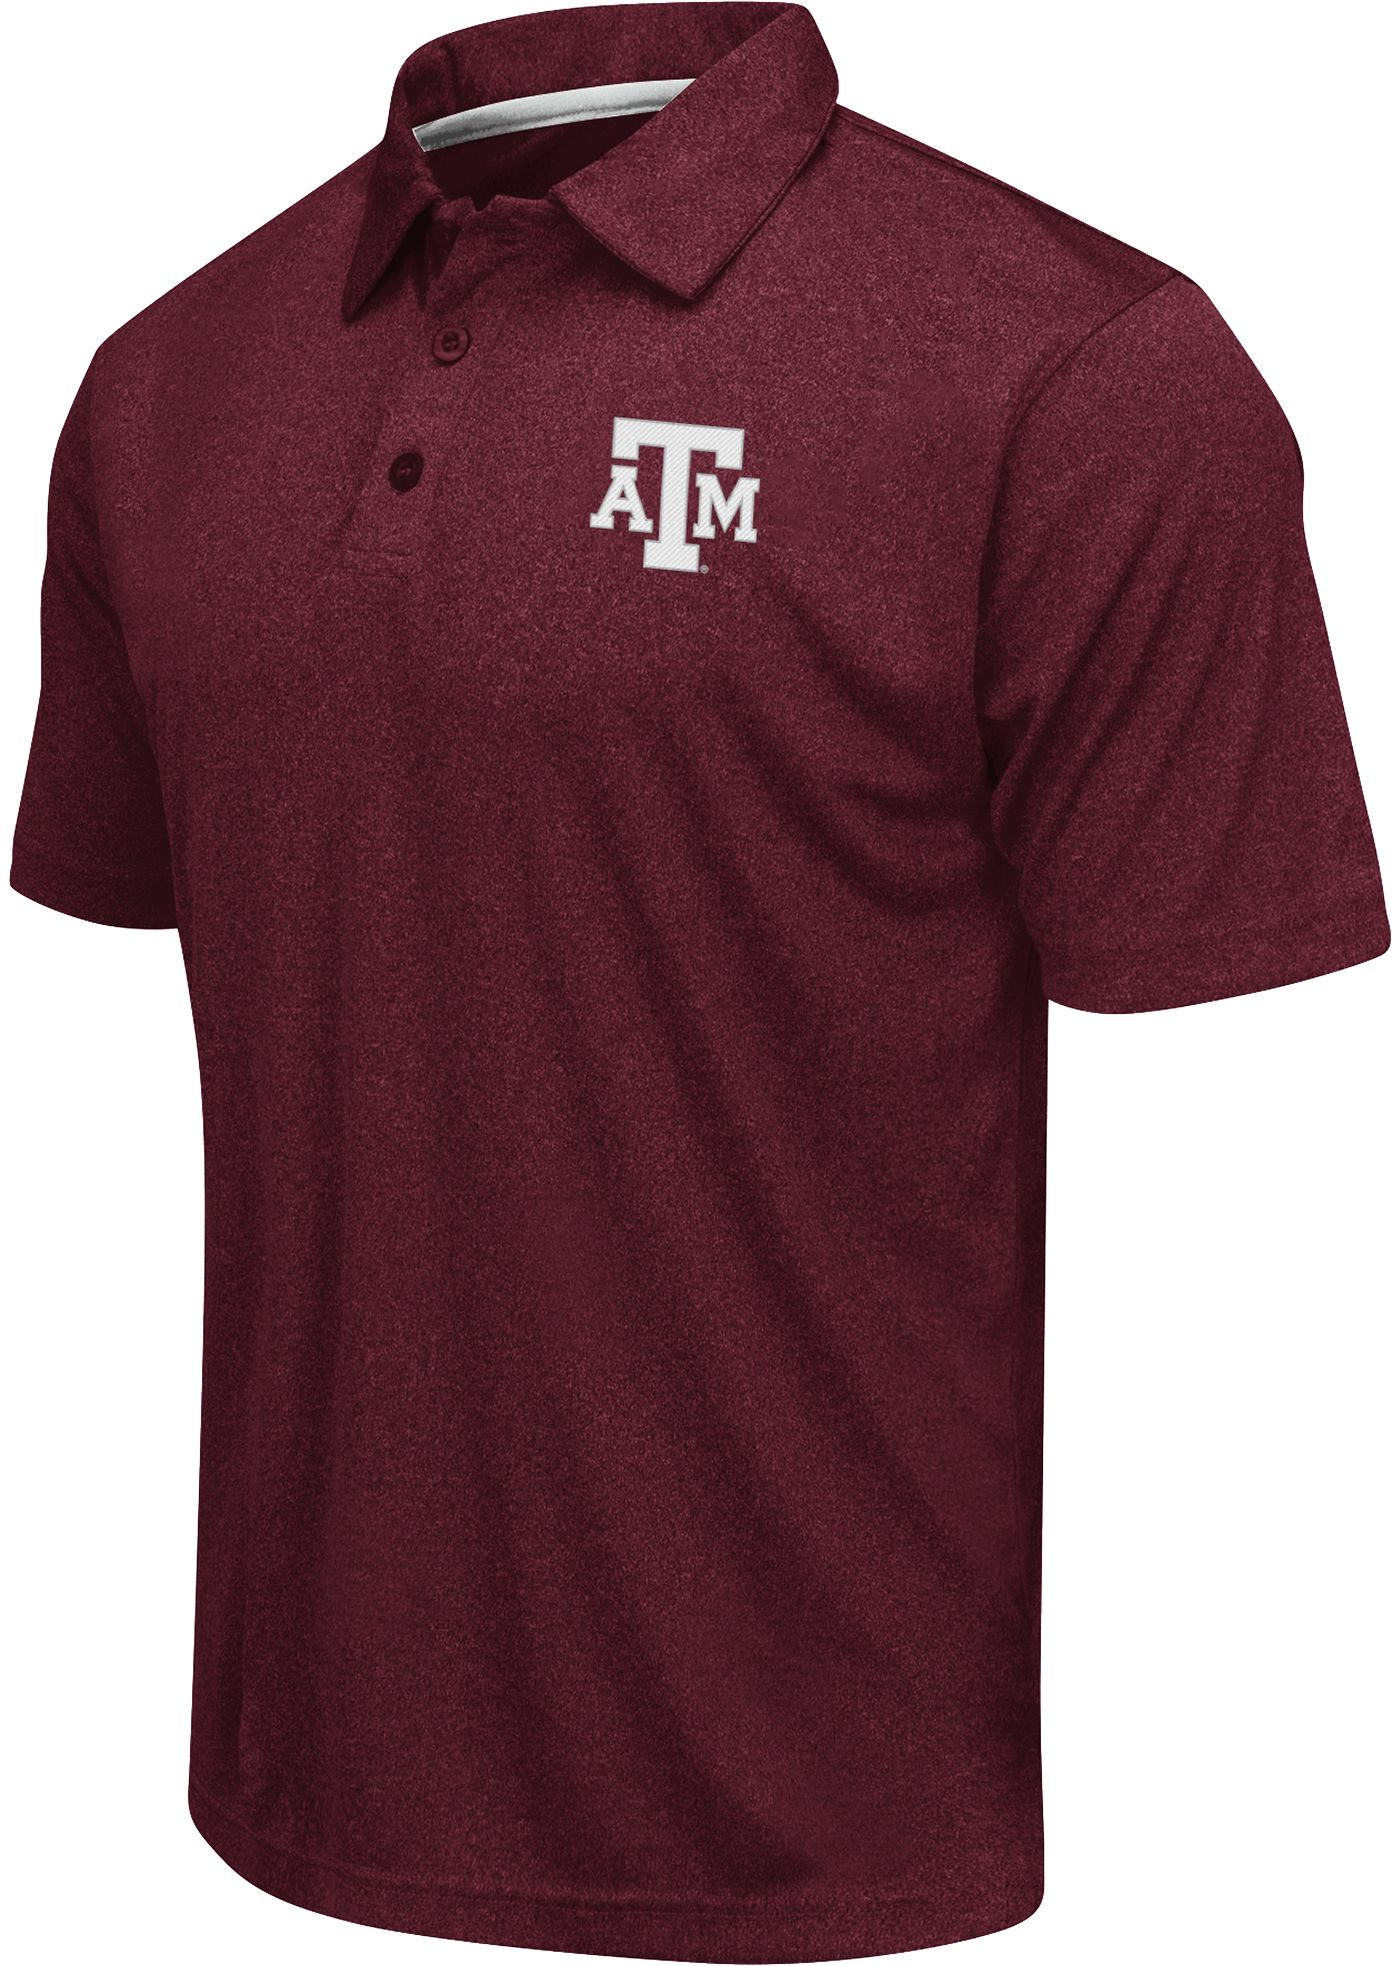 Colosseum Athletics Men's Texas AM Aggies Maroon Heathered Performance Polo